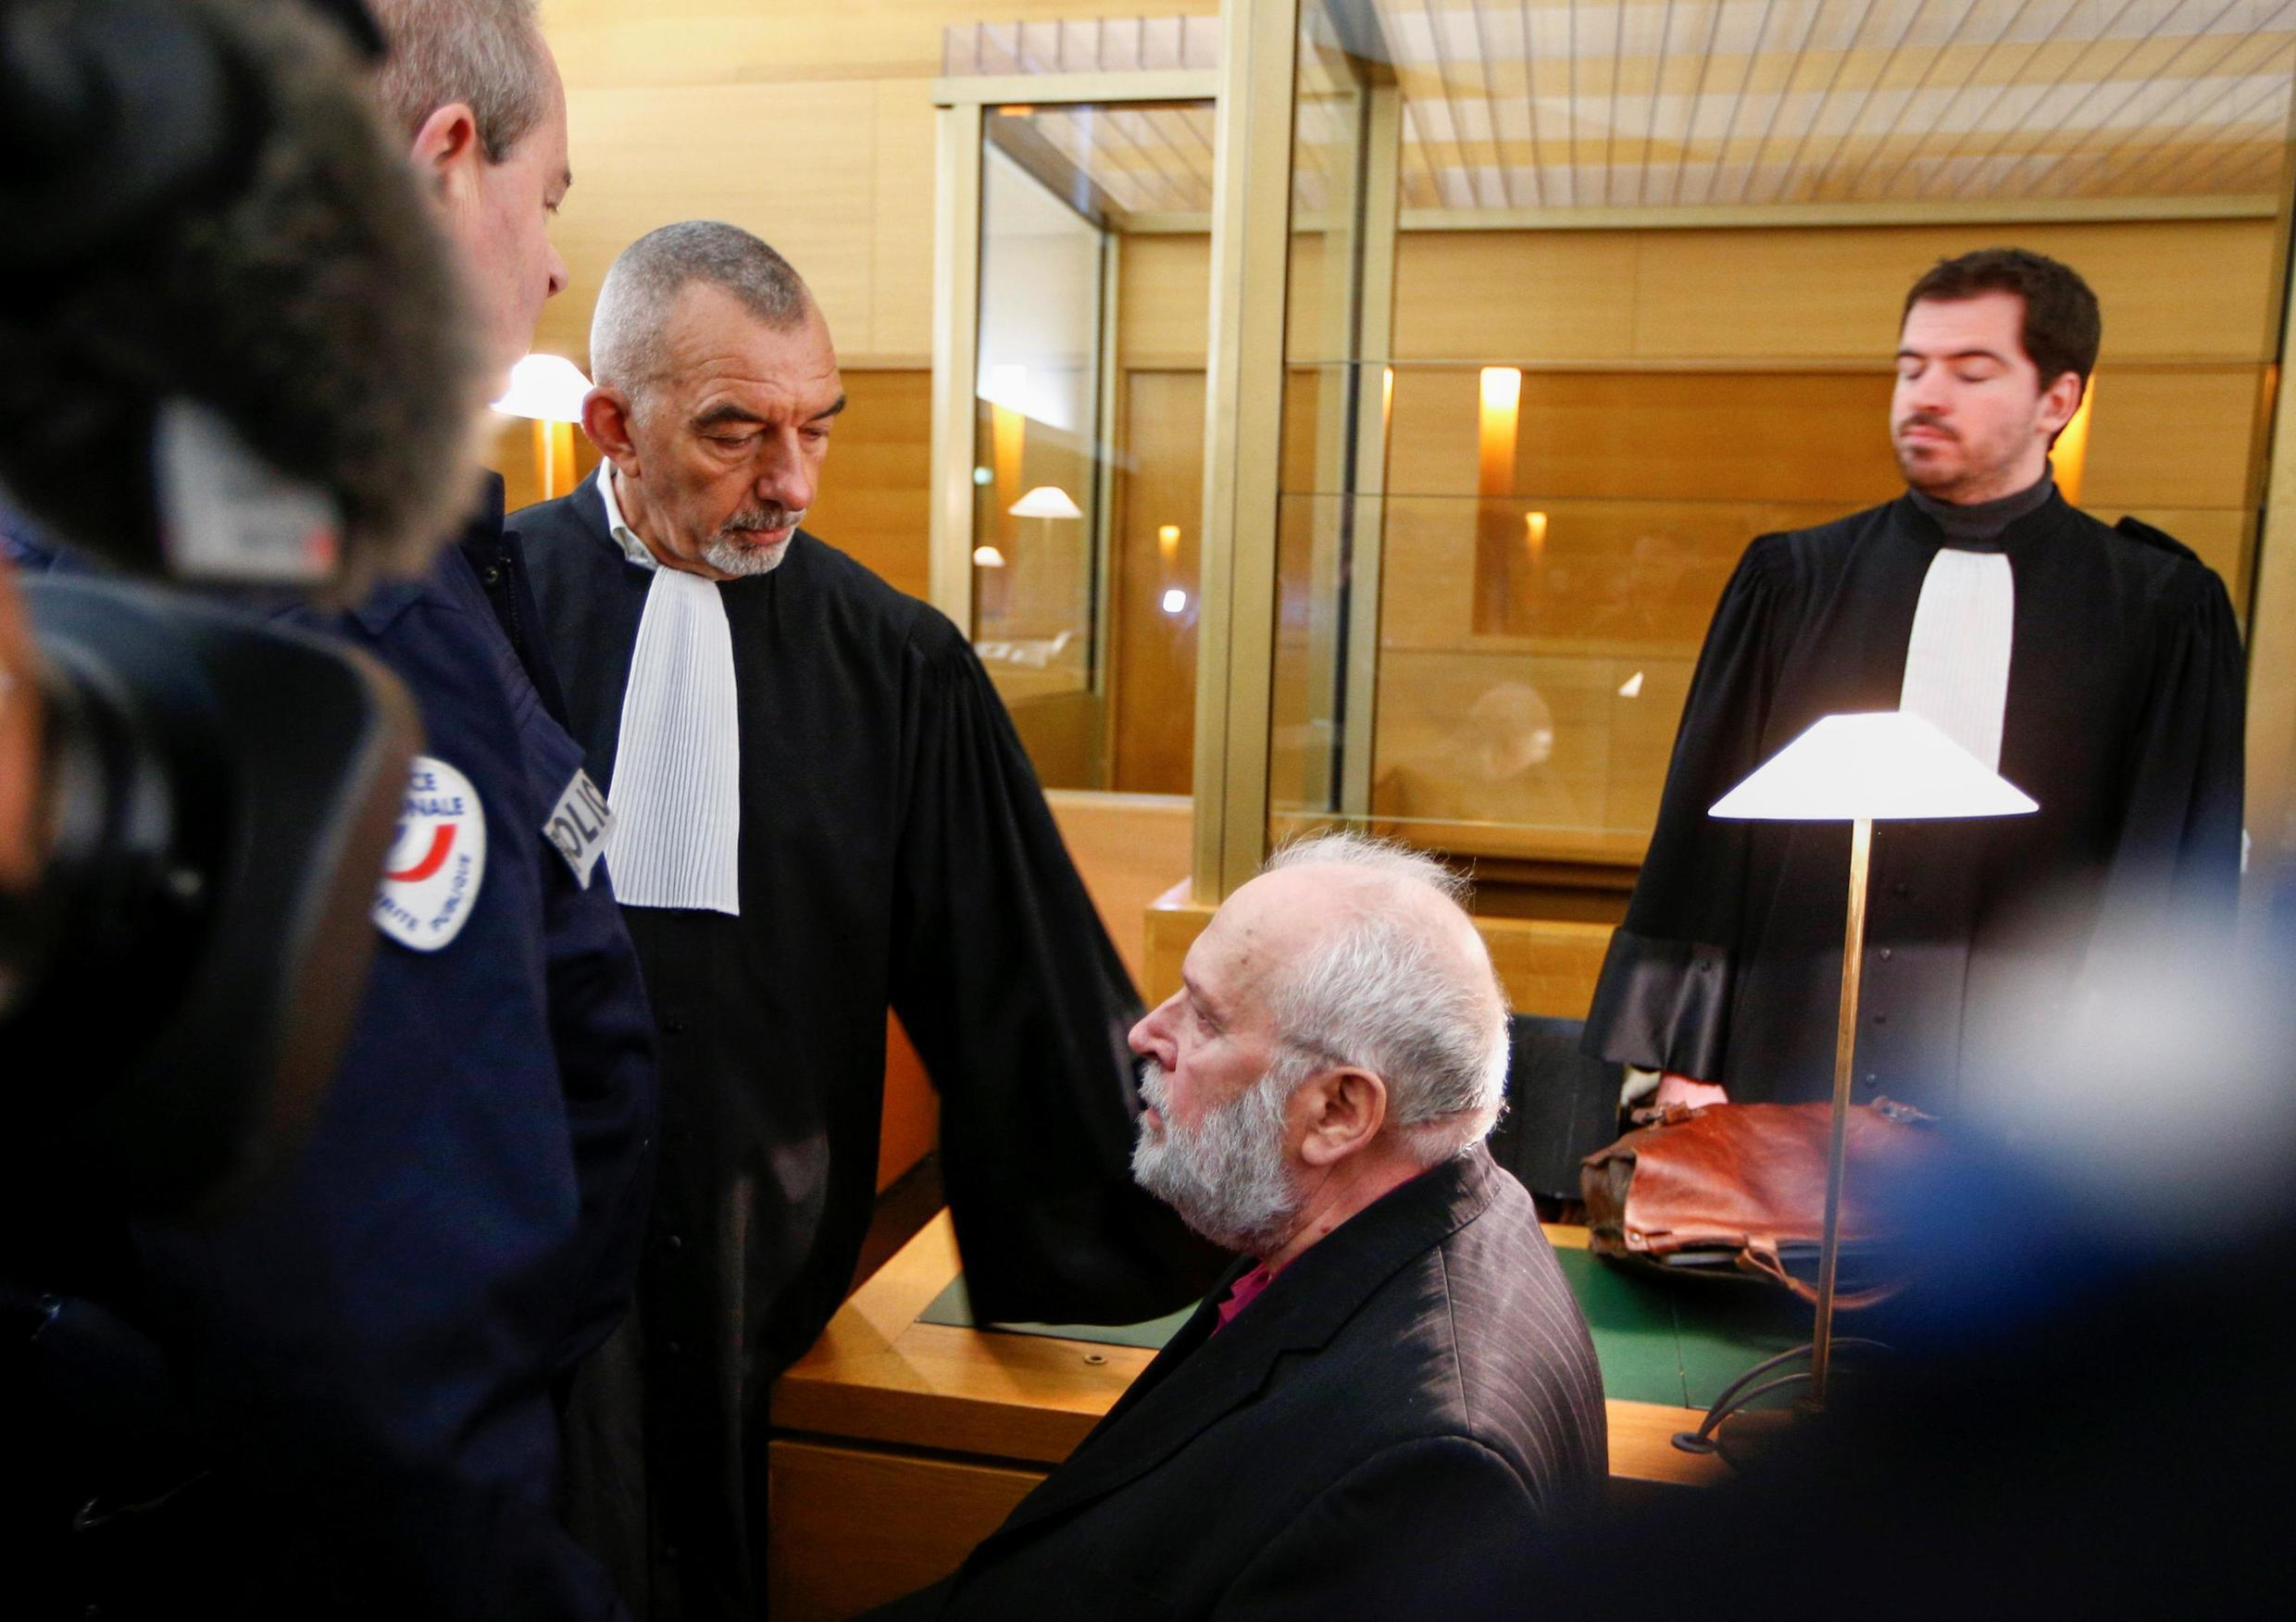 Former French priest Bernard Preynat at his trial on charges of sex abuse of minors in Lyon, France, 13 January, 2020.